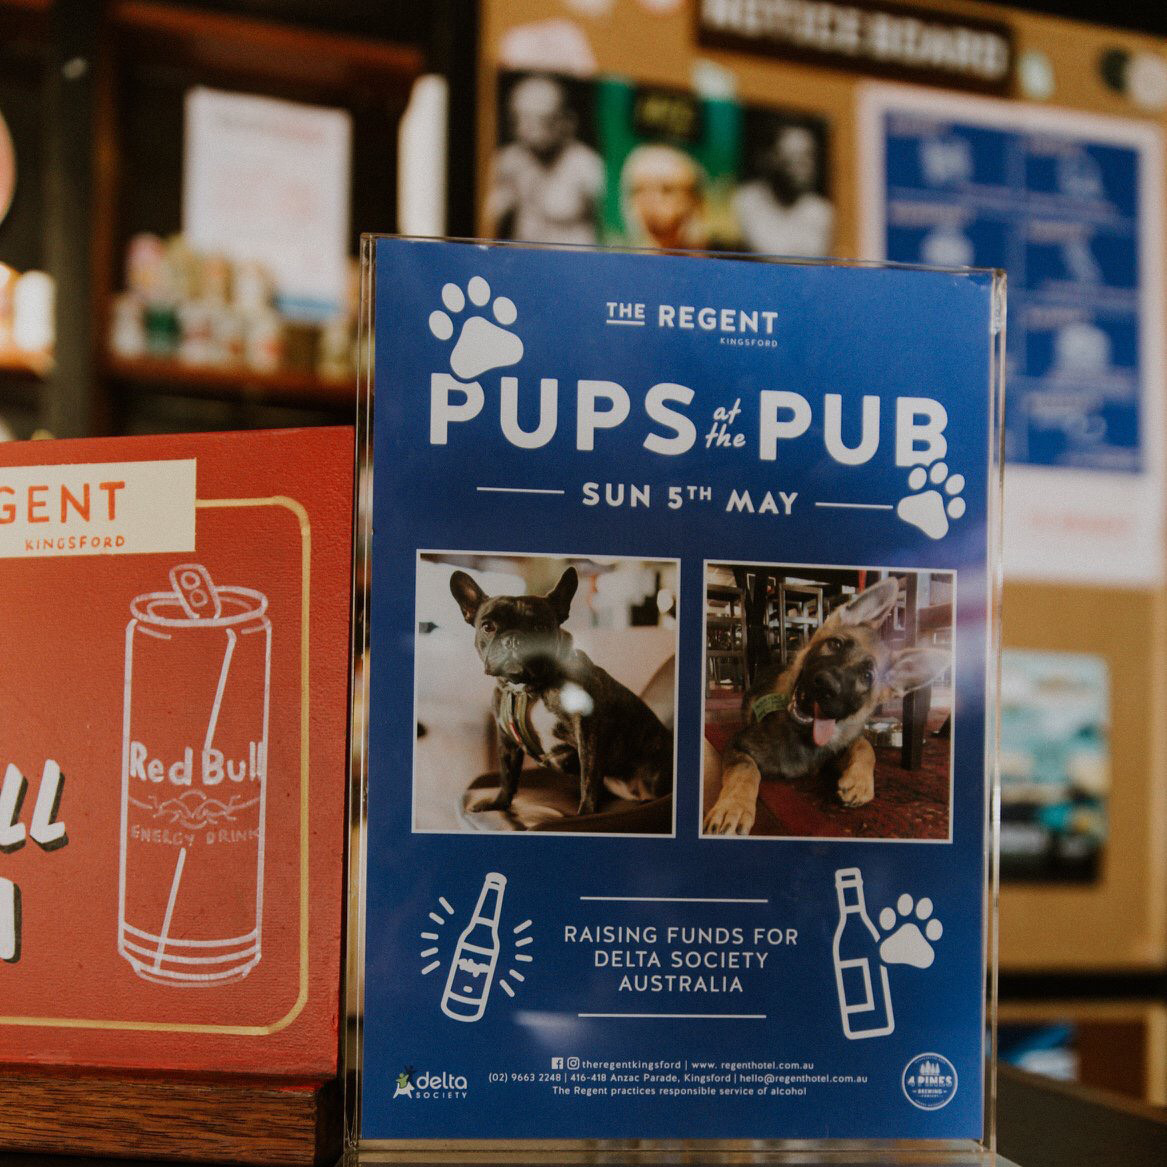 regent pups at the pub poster design